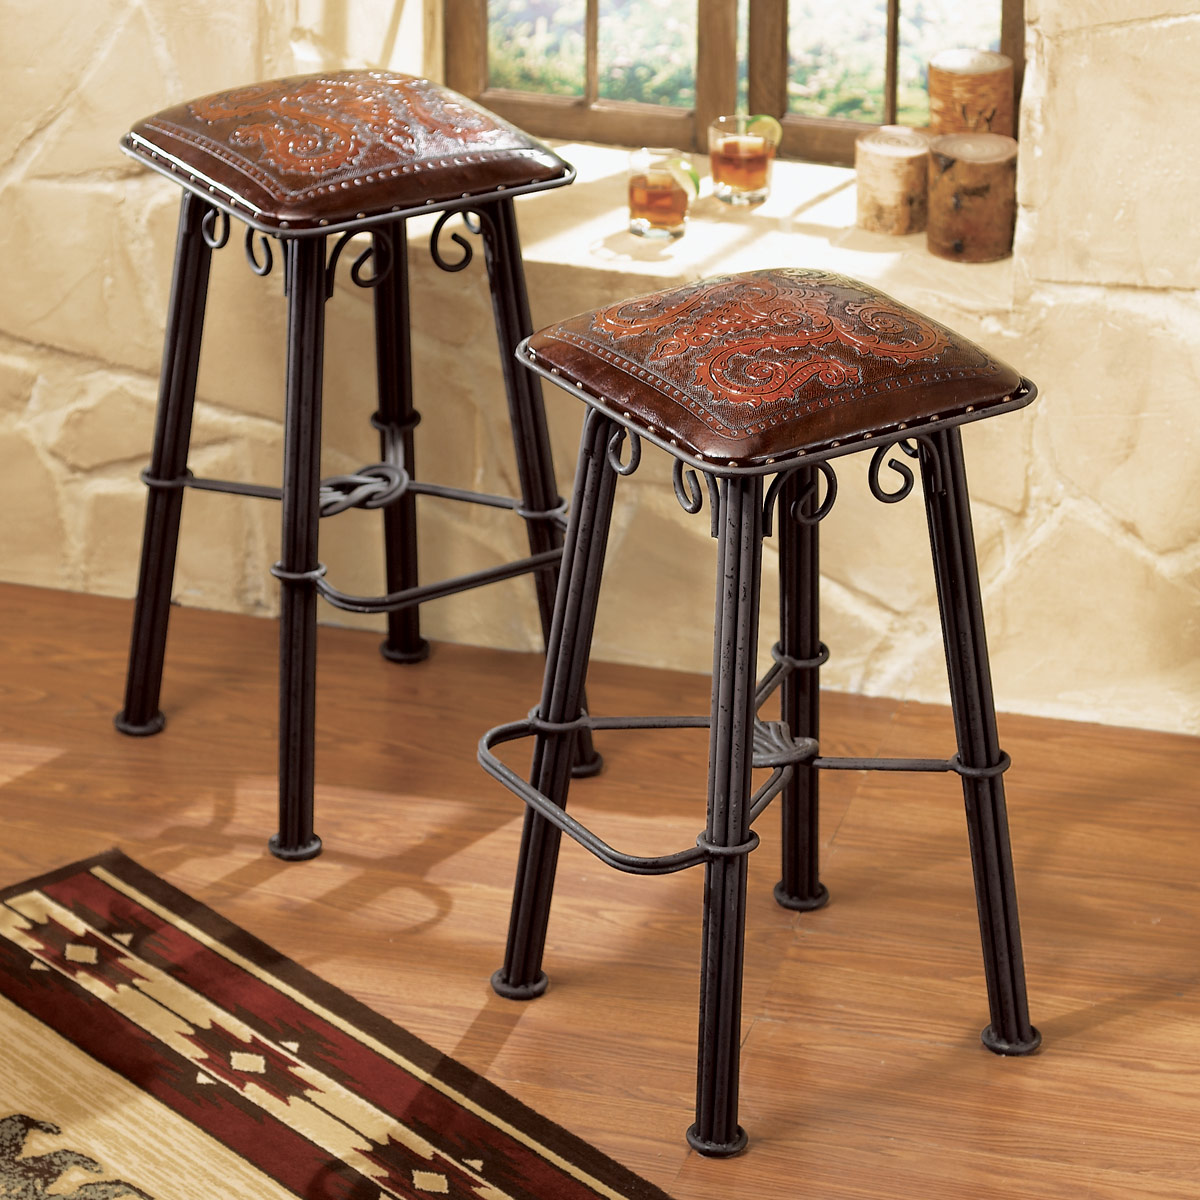 Iron Barstool Tooled Leather Seat - Set of 3